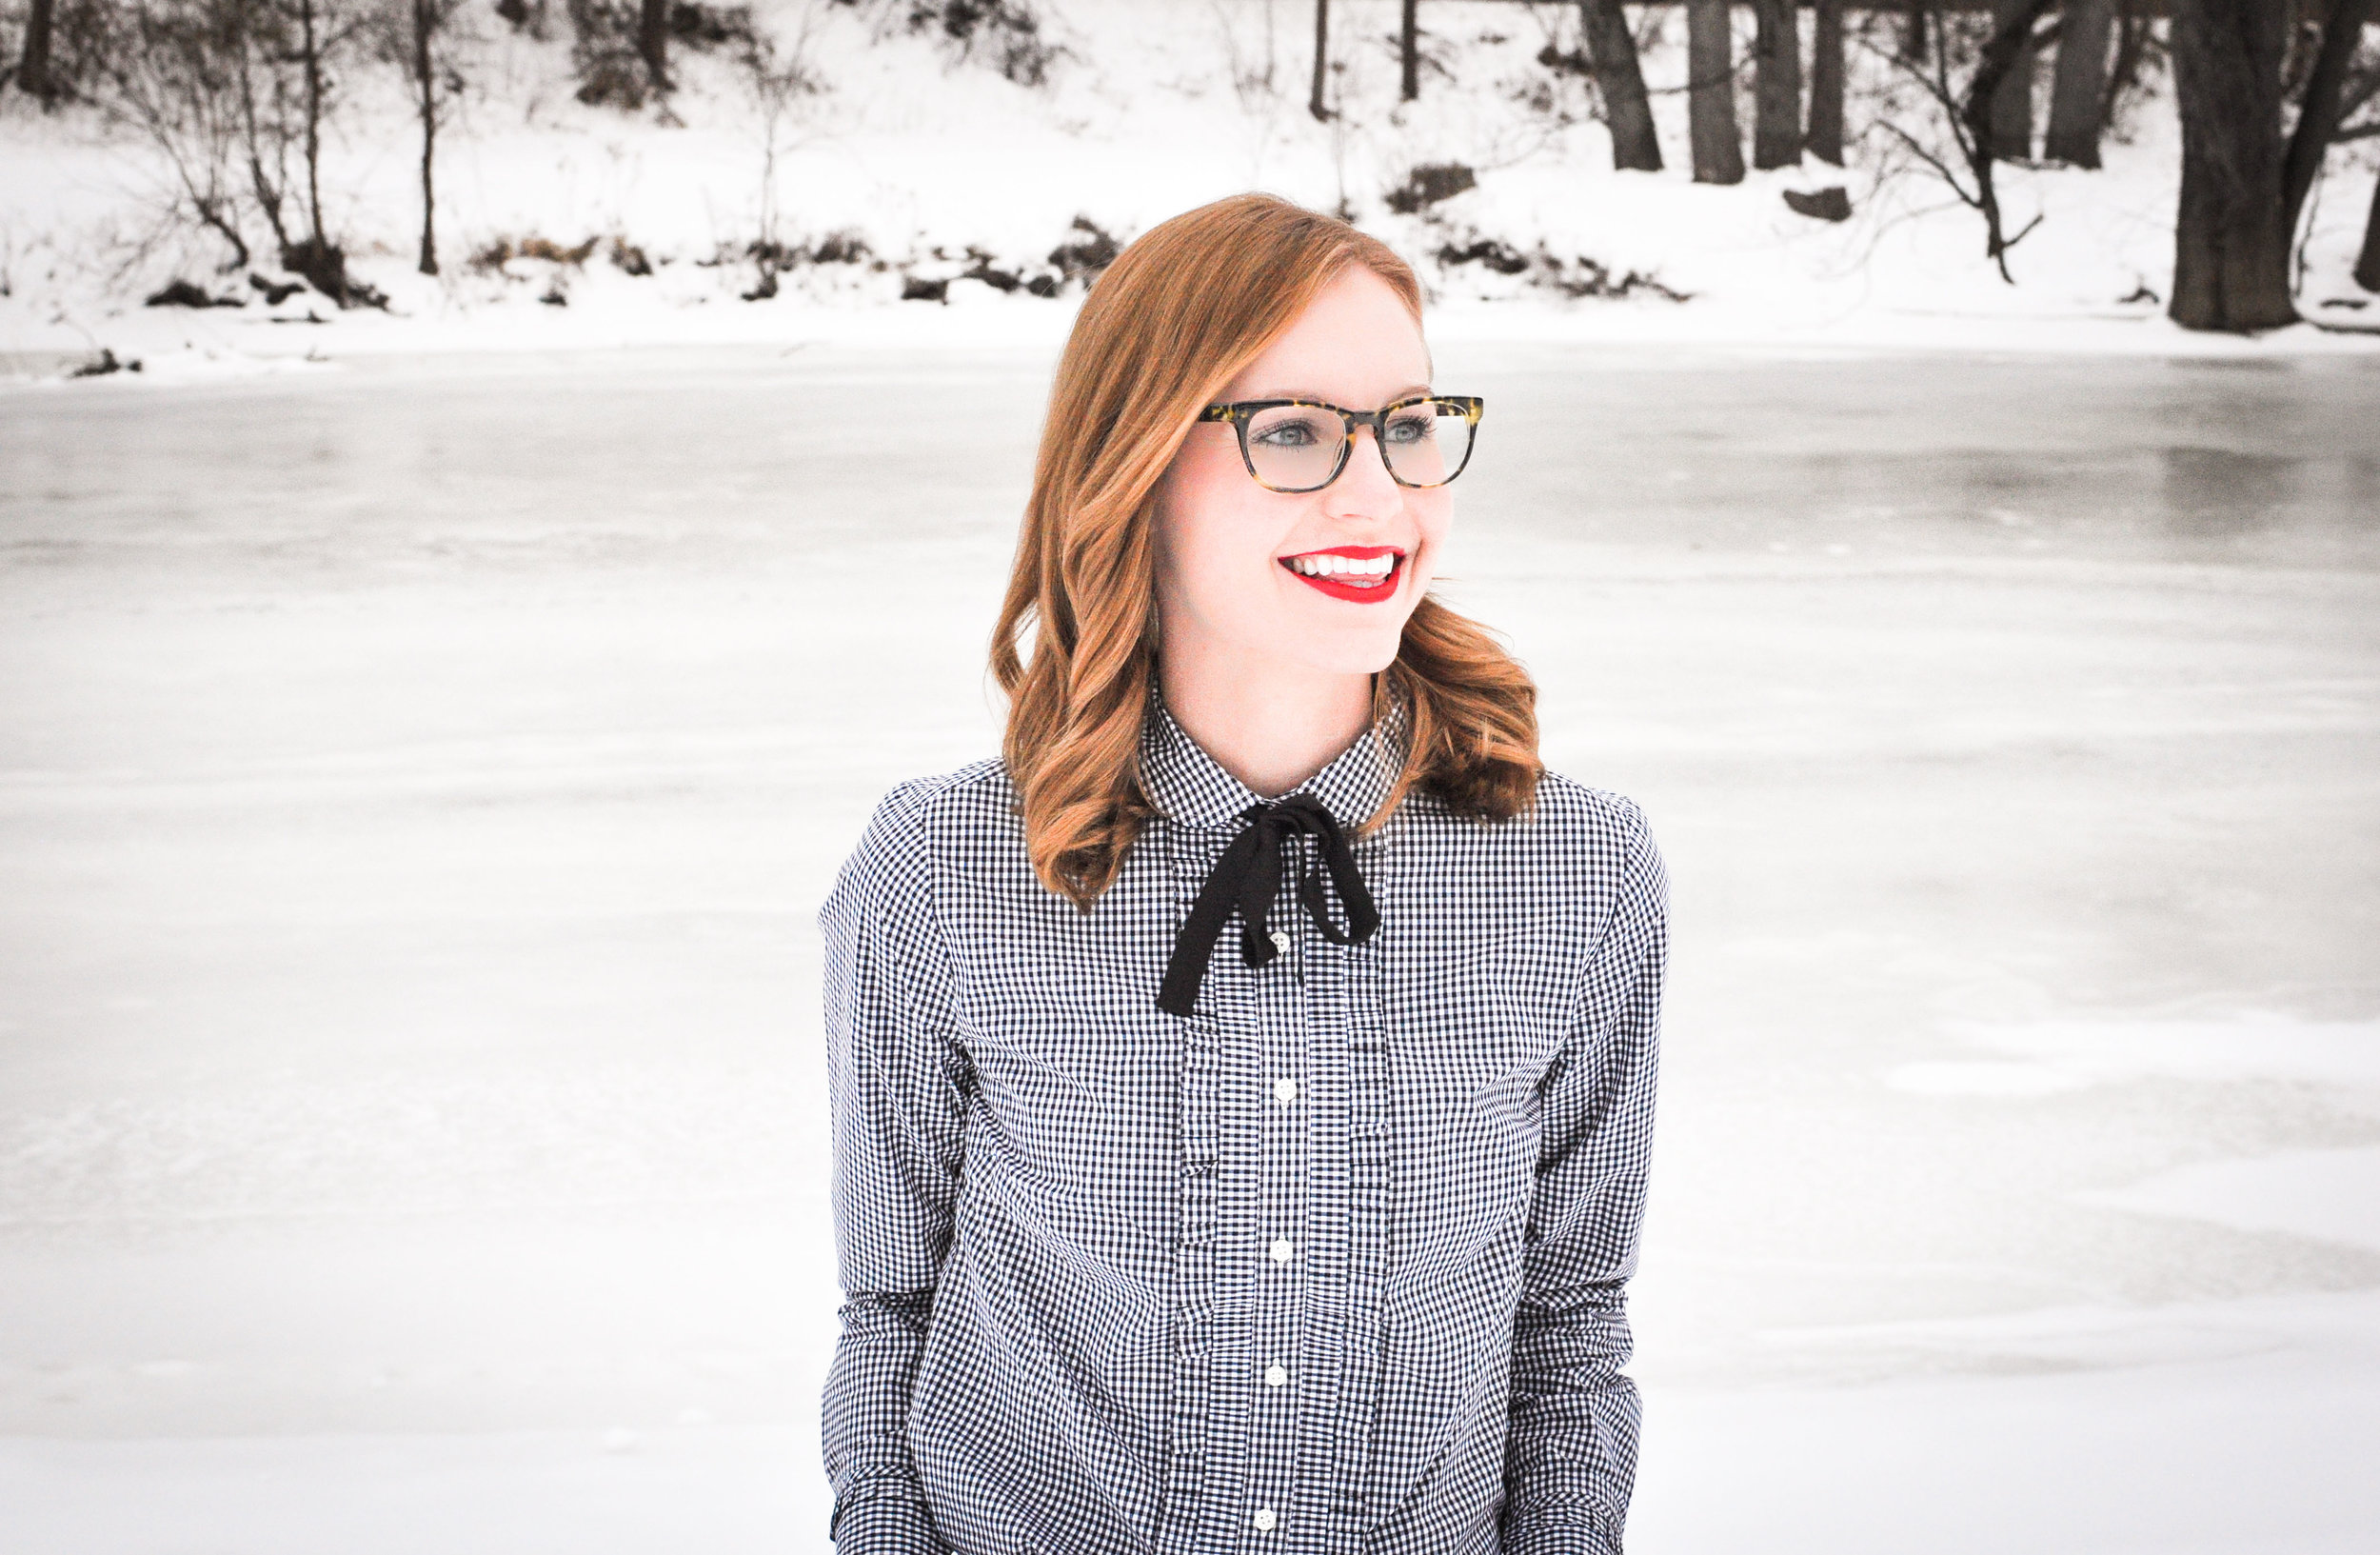 woman with red lipstick and glasses in snow